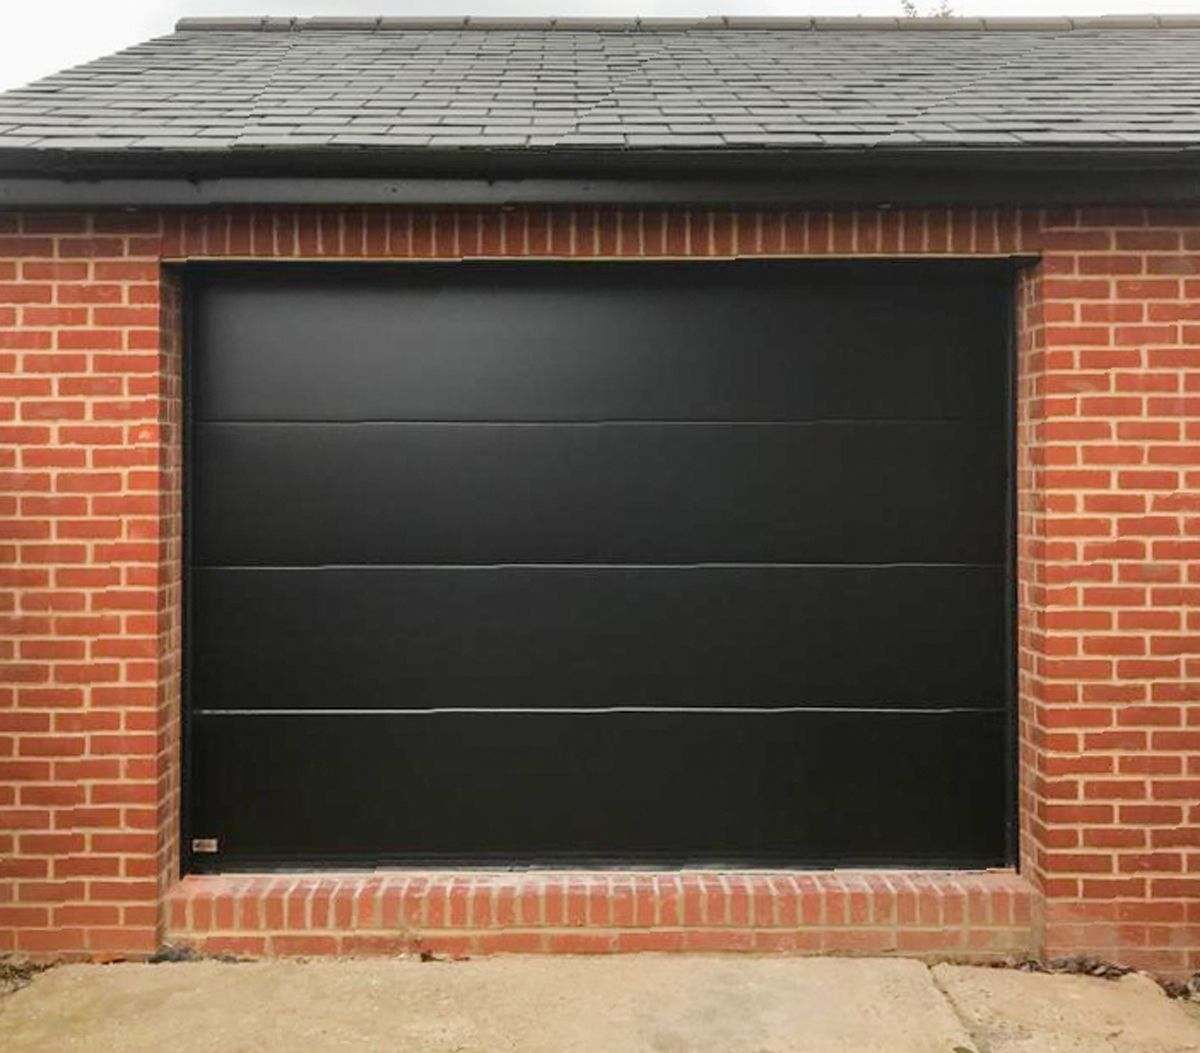 An Sws Seceuroglide Sectional Unribbed Elite Garage Door Finished In A Smooth Black Garage Doors Sectional Garage Doors Black Garage Doors